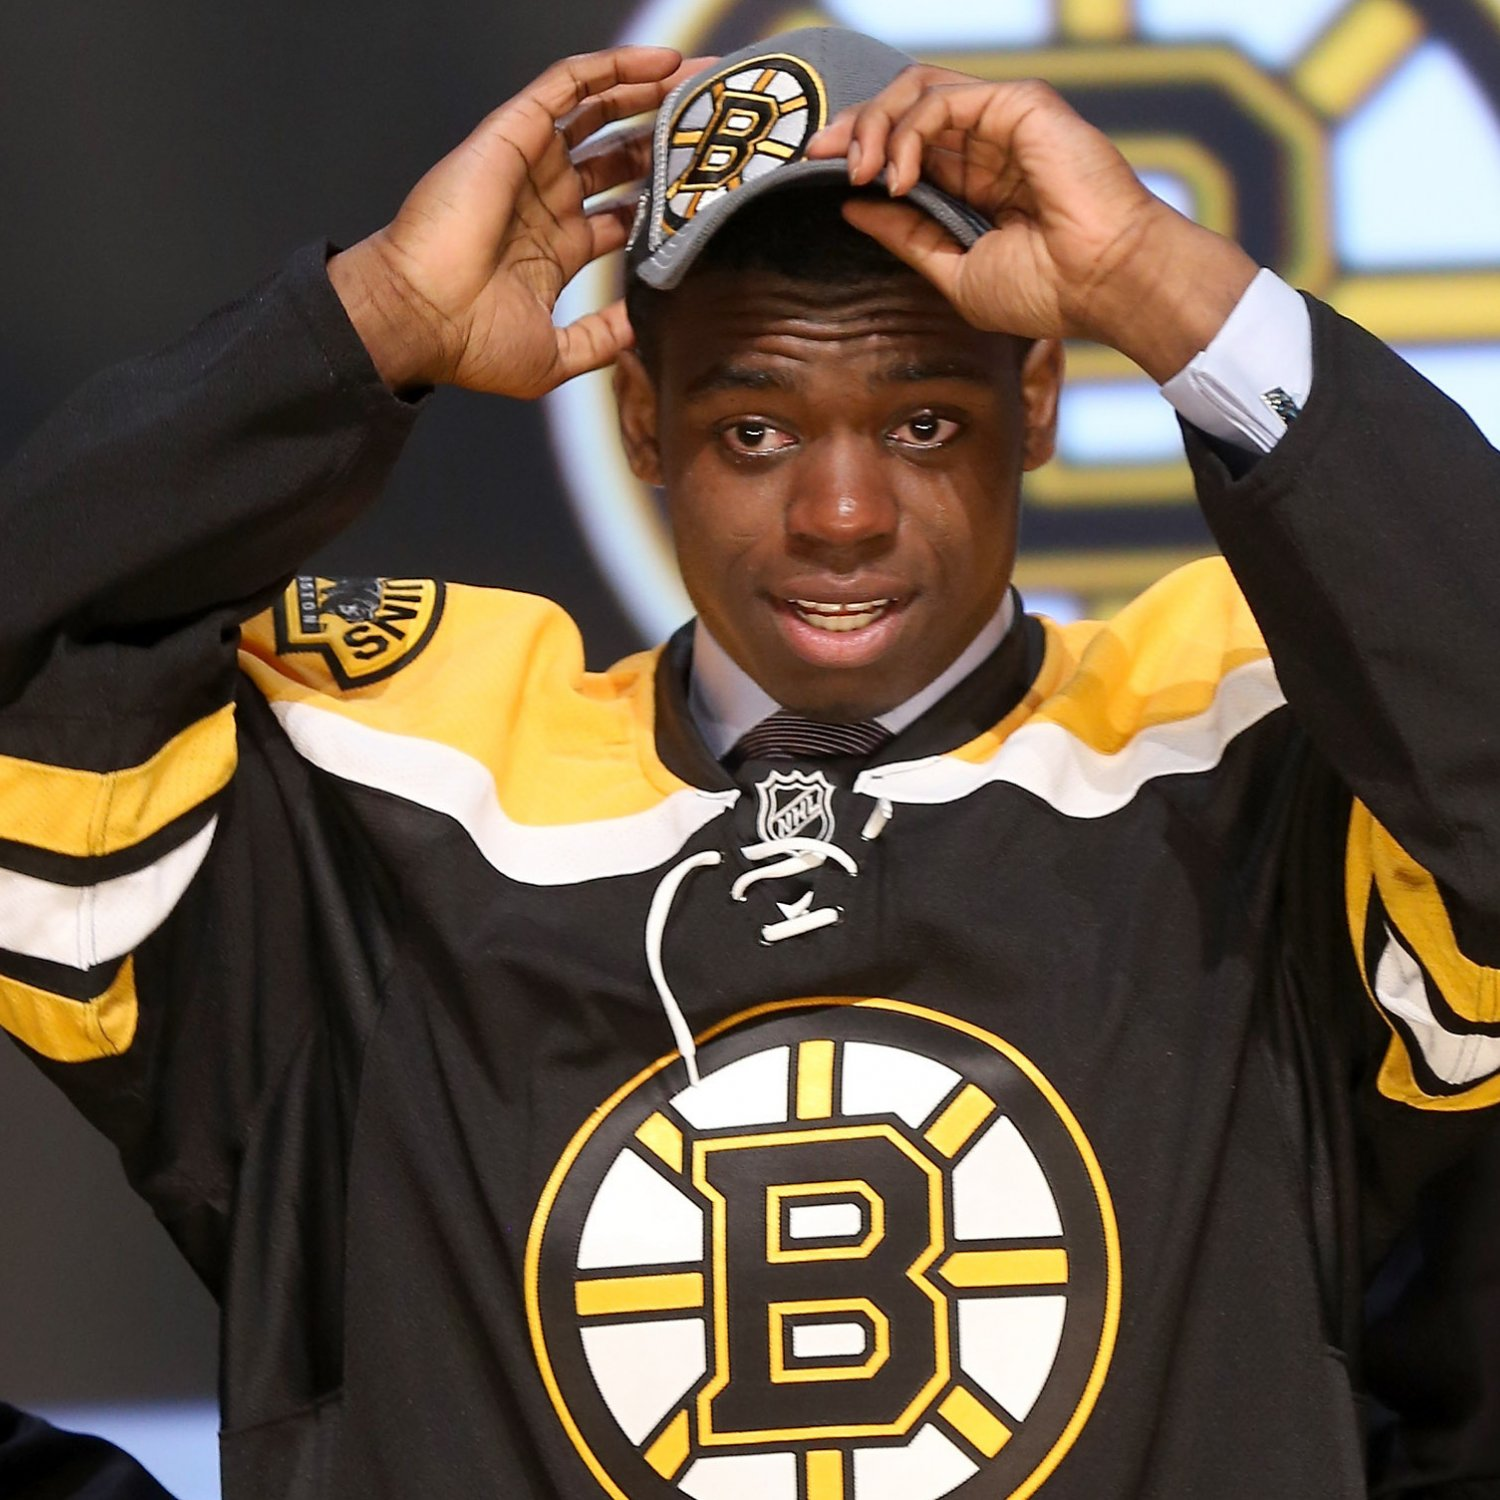 Boston Bruins: Malcolm Subban And Other Goalies Drafted By